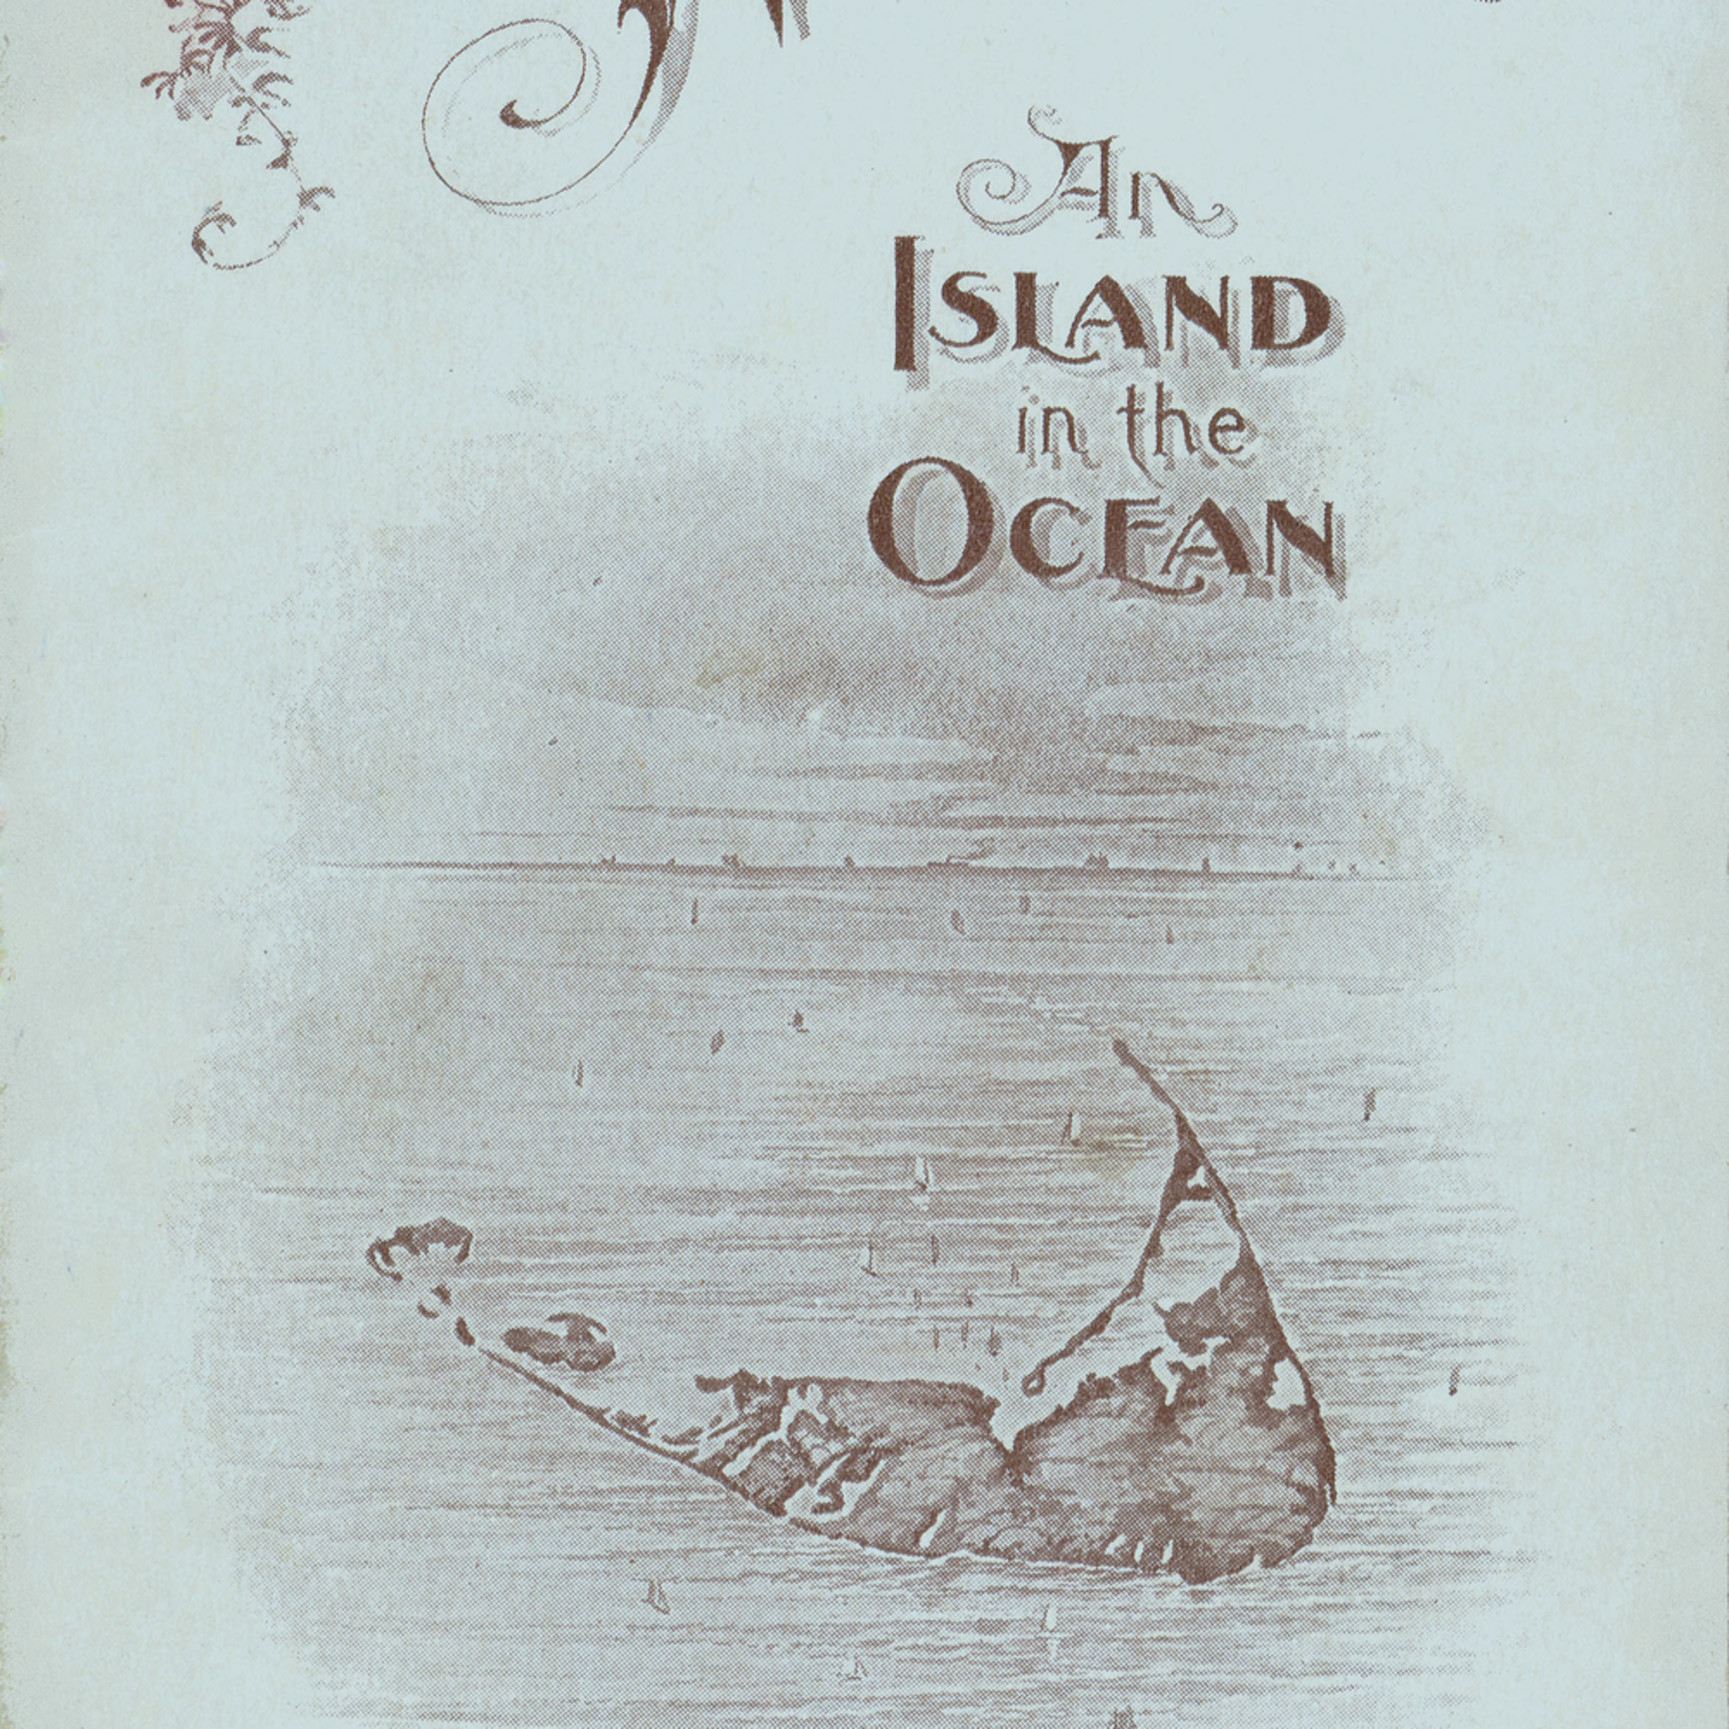 010 p nantucket1897 the island in the ocean color 11.5x23.5 22 eapxuo